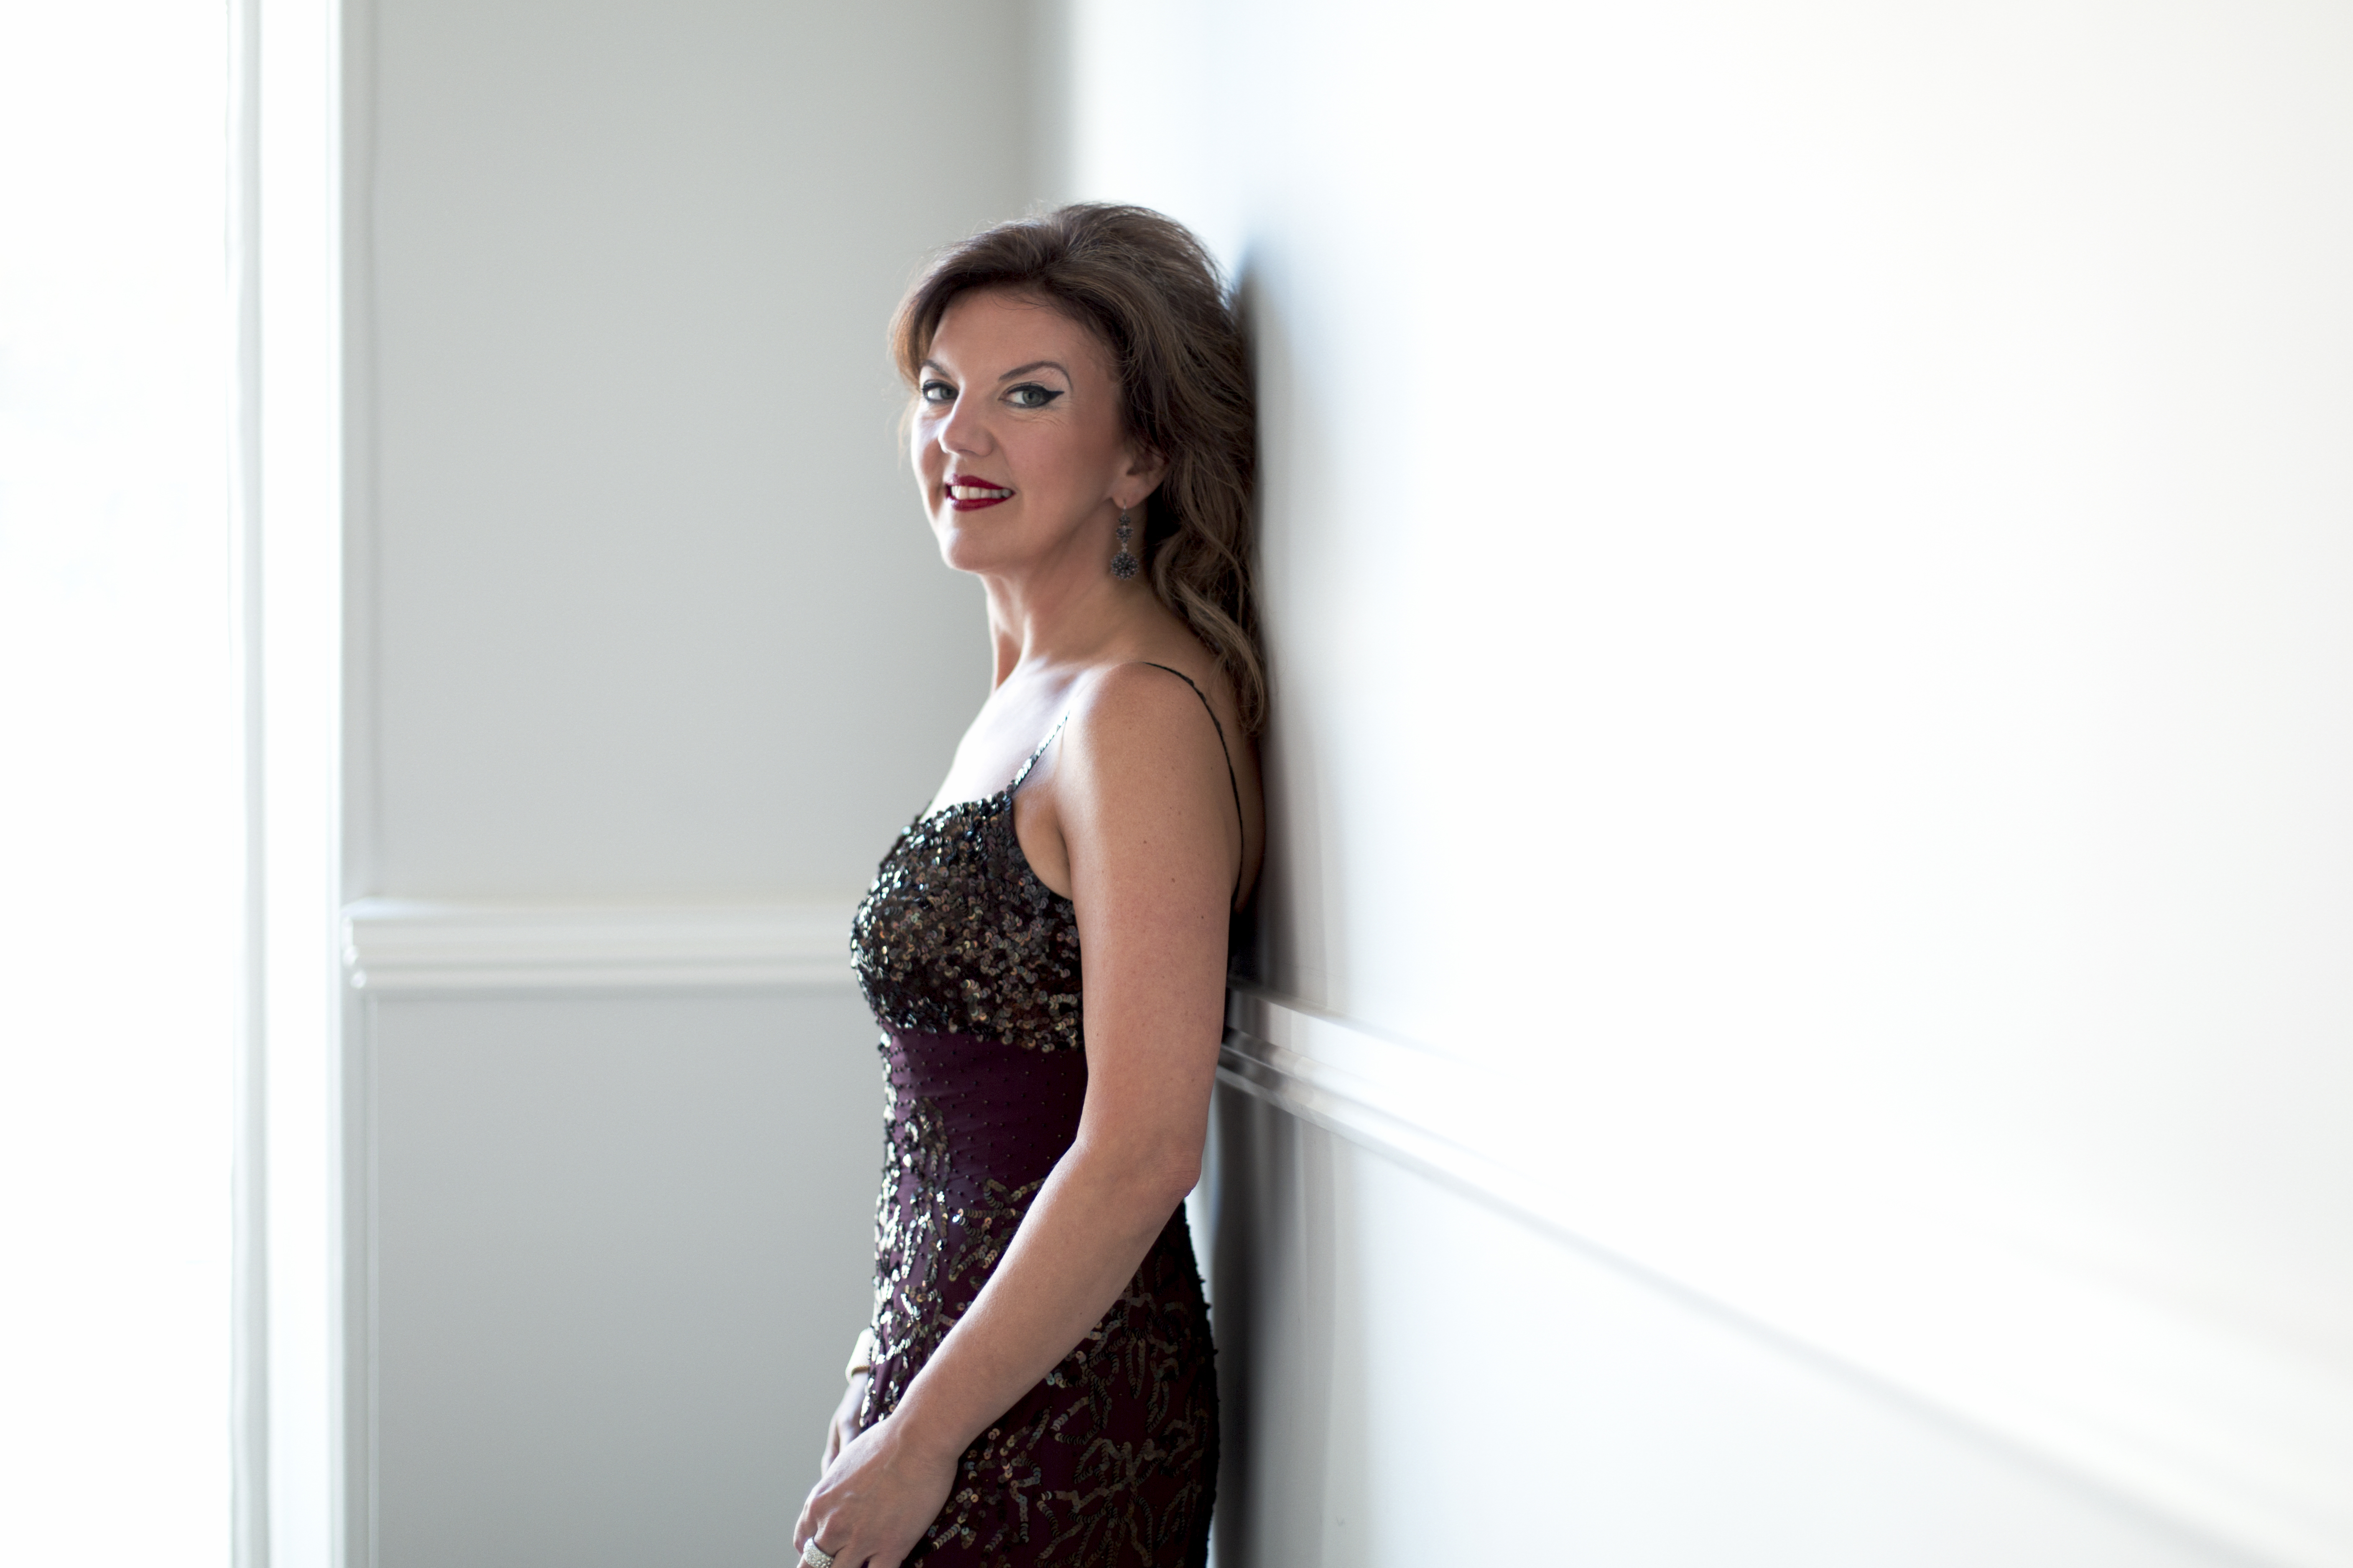 learn more about violinist tasmin little aor management inc